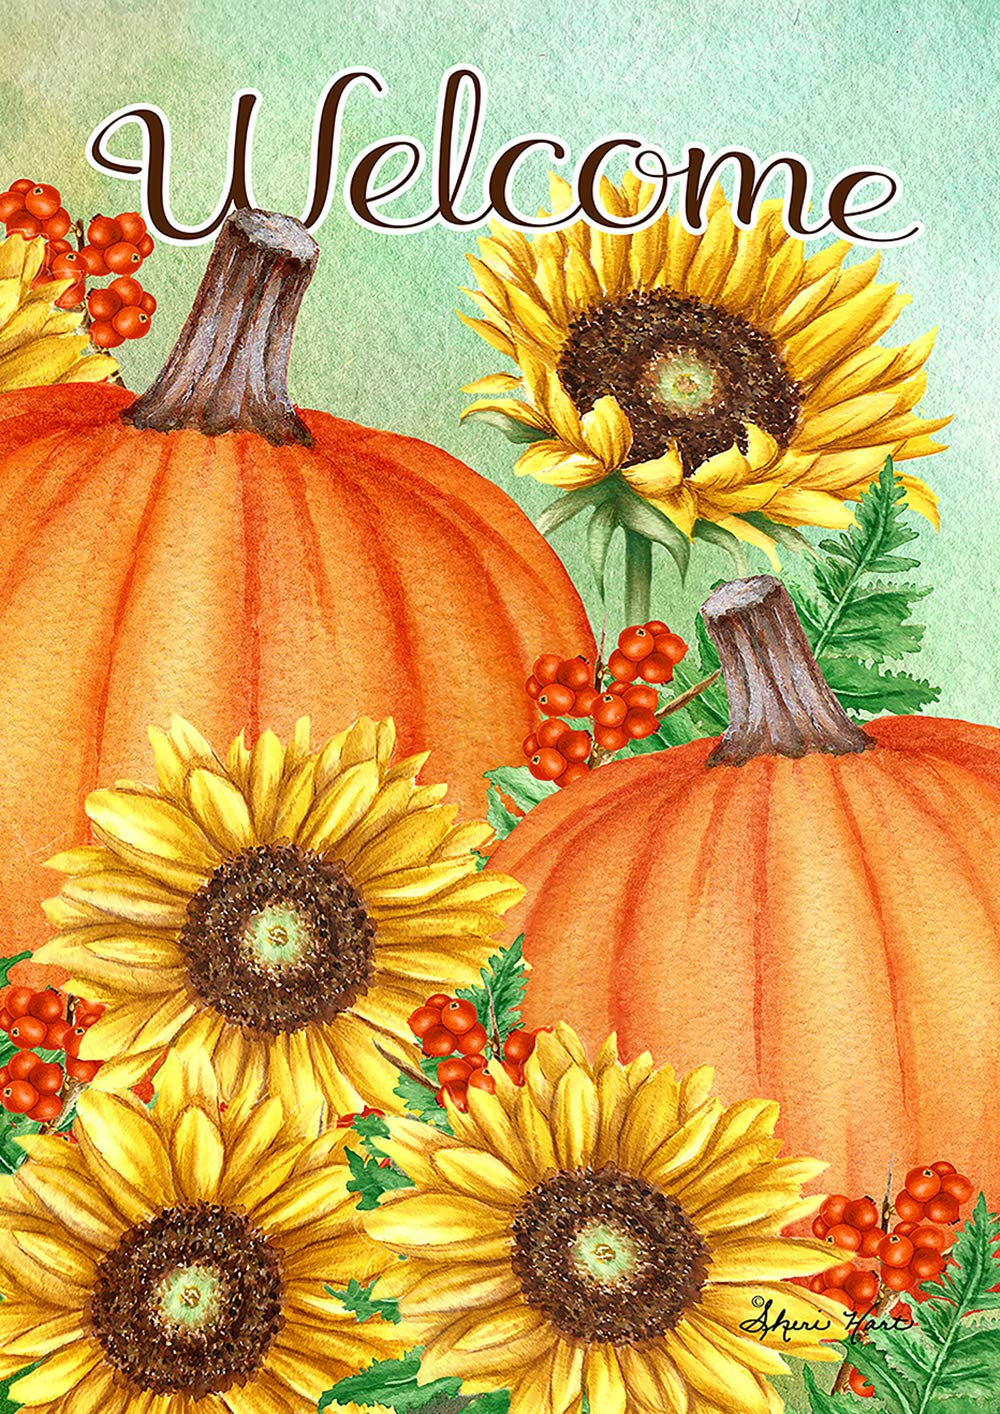 Toland Home Garden 1012208 Pumpkins and Sunflowers 28 x 40 inch Decorative, Fall Autumn Welcome, House Flag